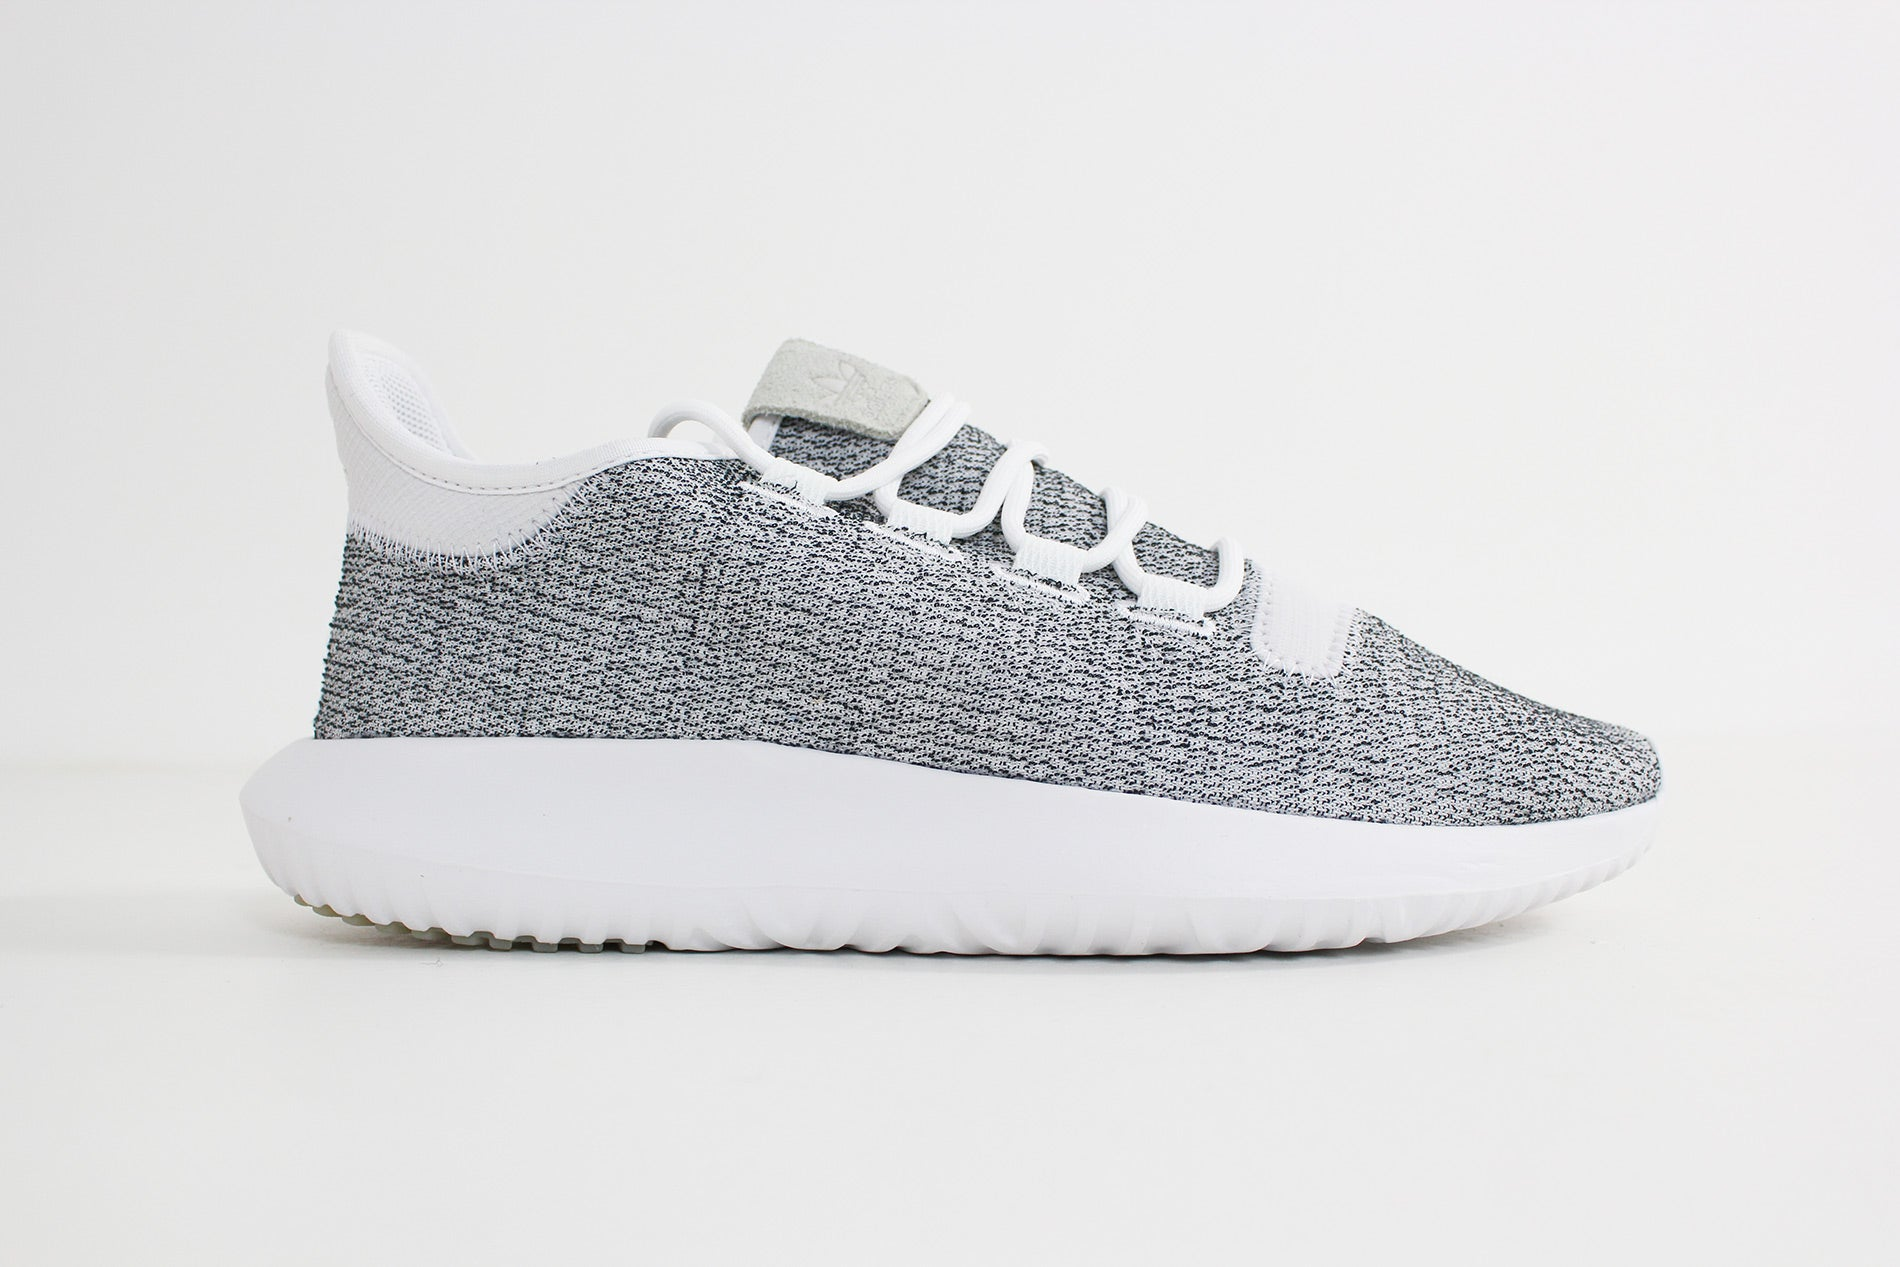 Adidas -  Tubular Shadow (FTW White/ Grey One/ FTW White) CQ0928